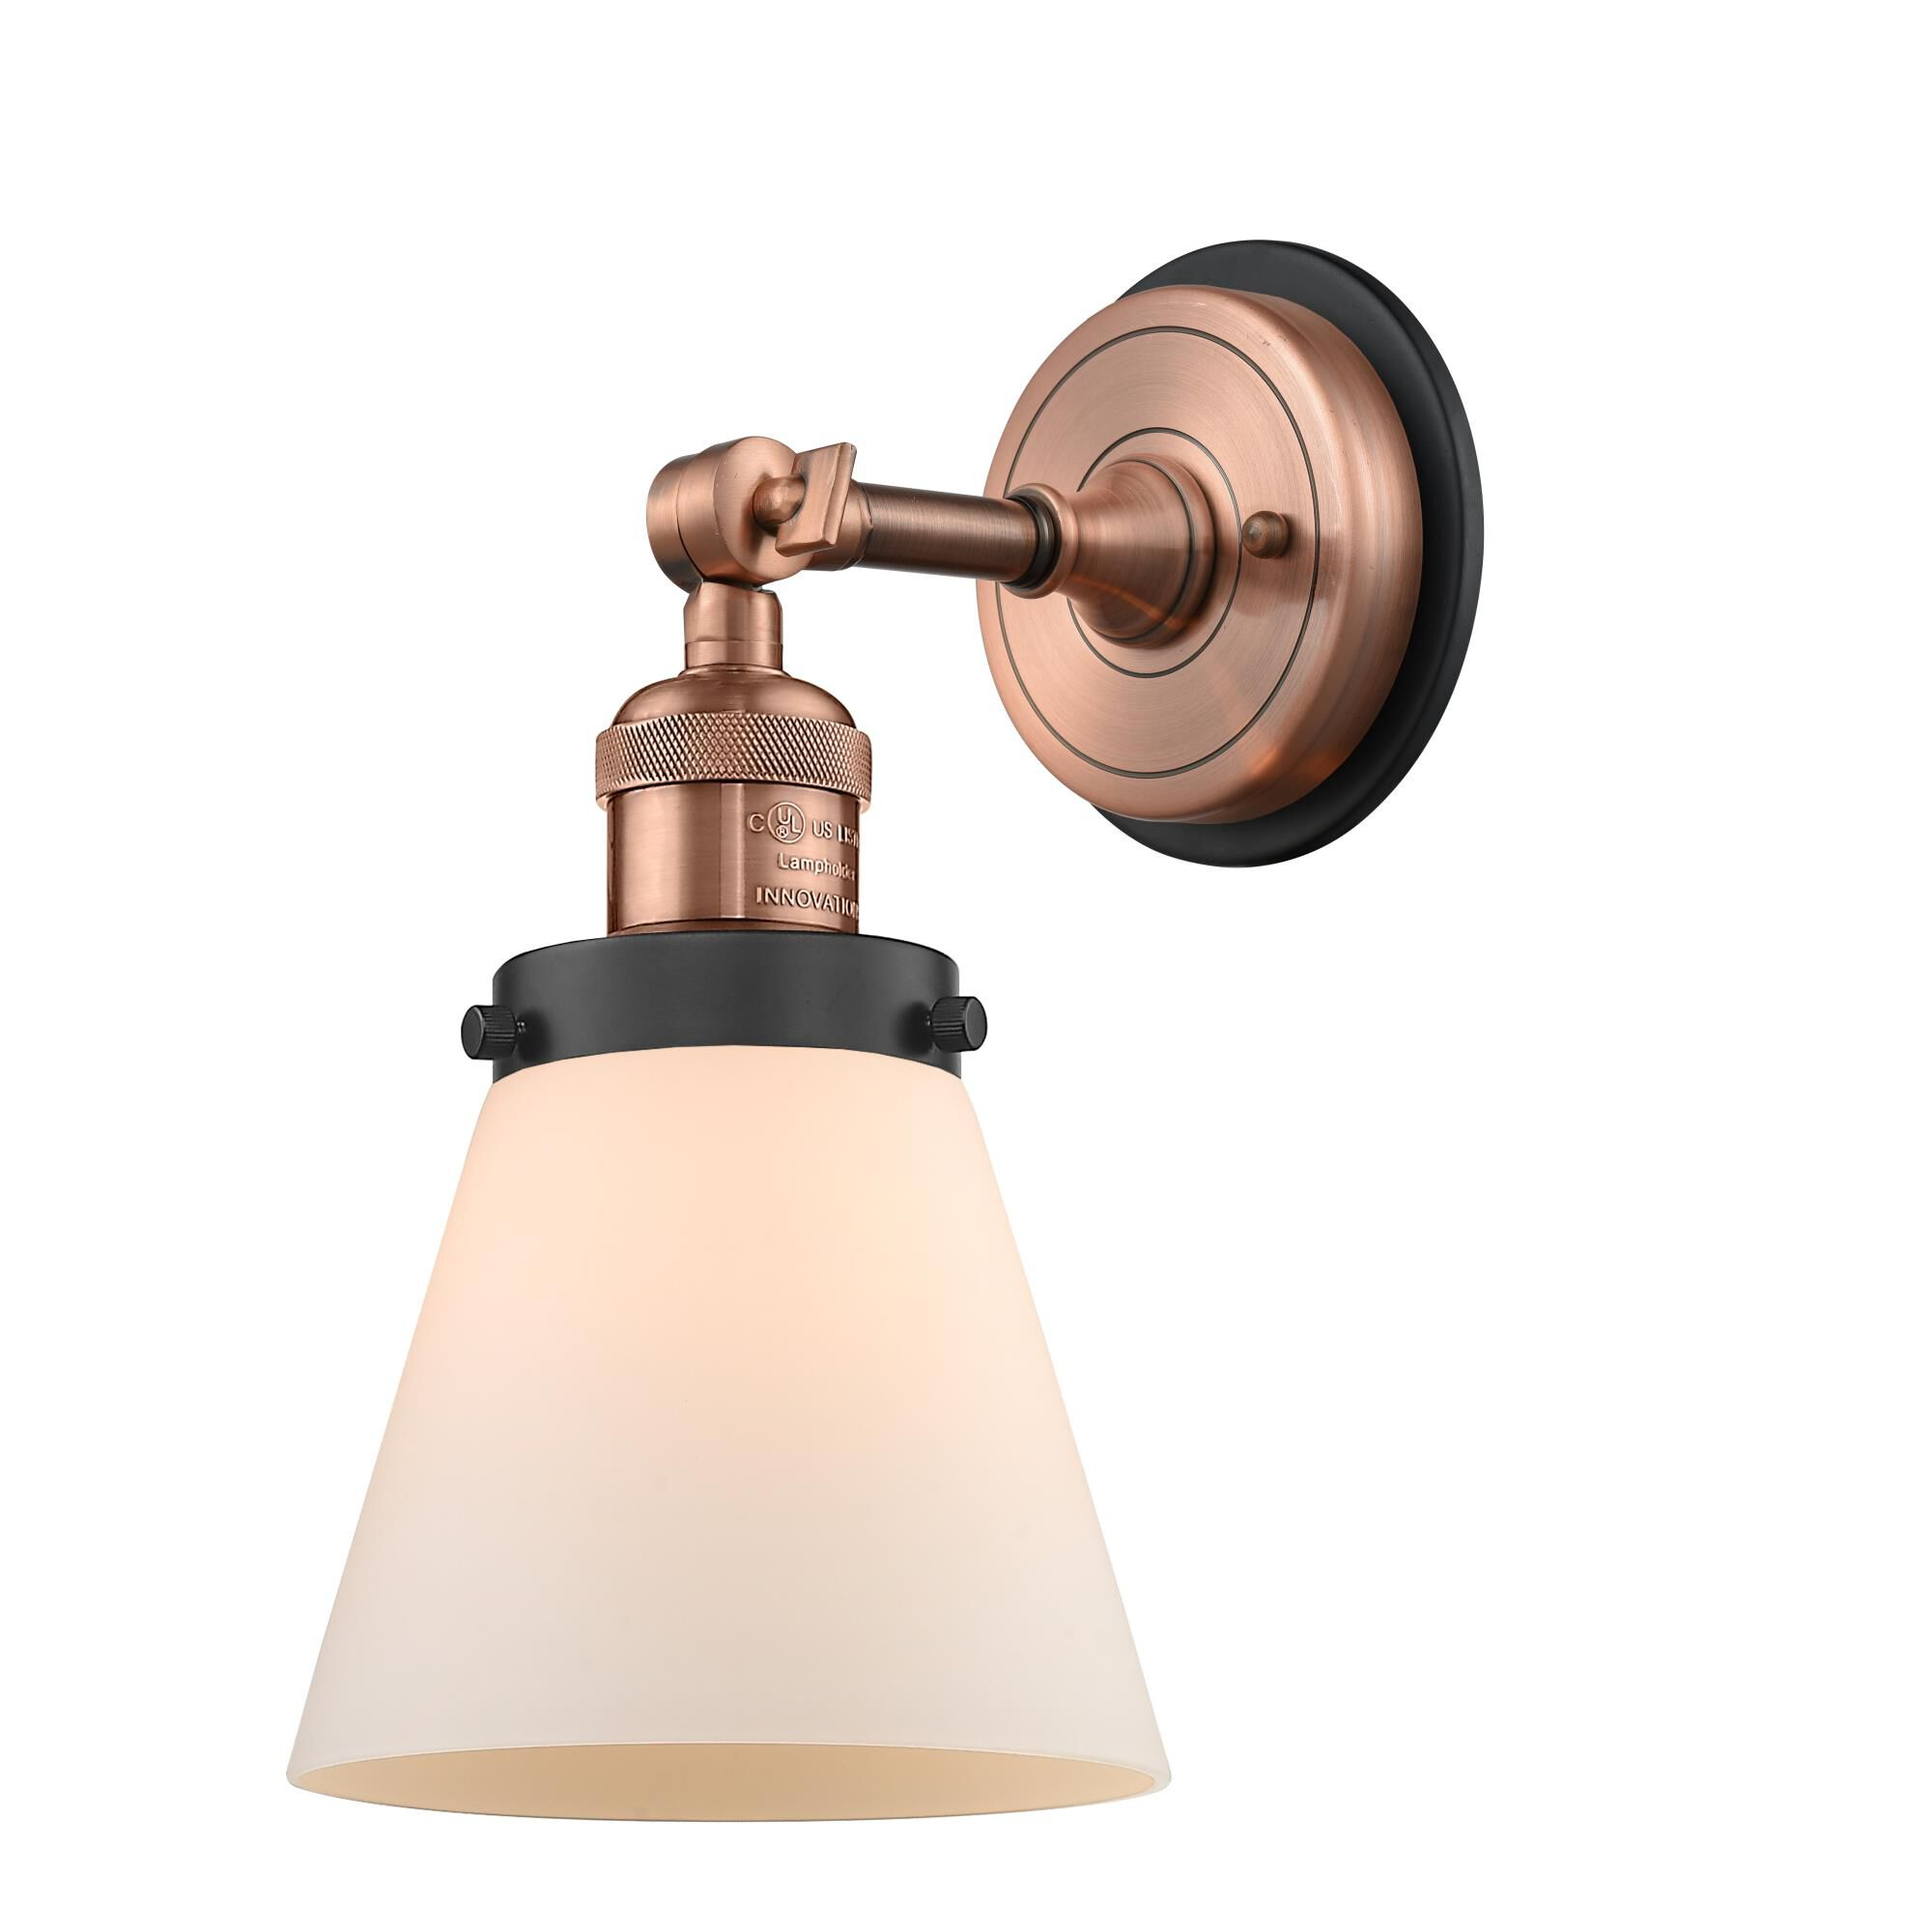 Innovations Lighting Bruno Marashlian Small Cone 10 Inch Wall Sconce Small Cone - 203BP-ACBK-G61 - Nautical